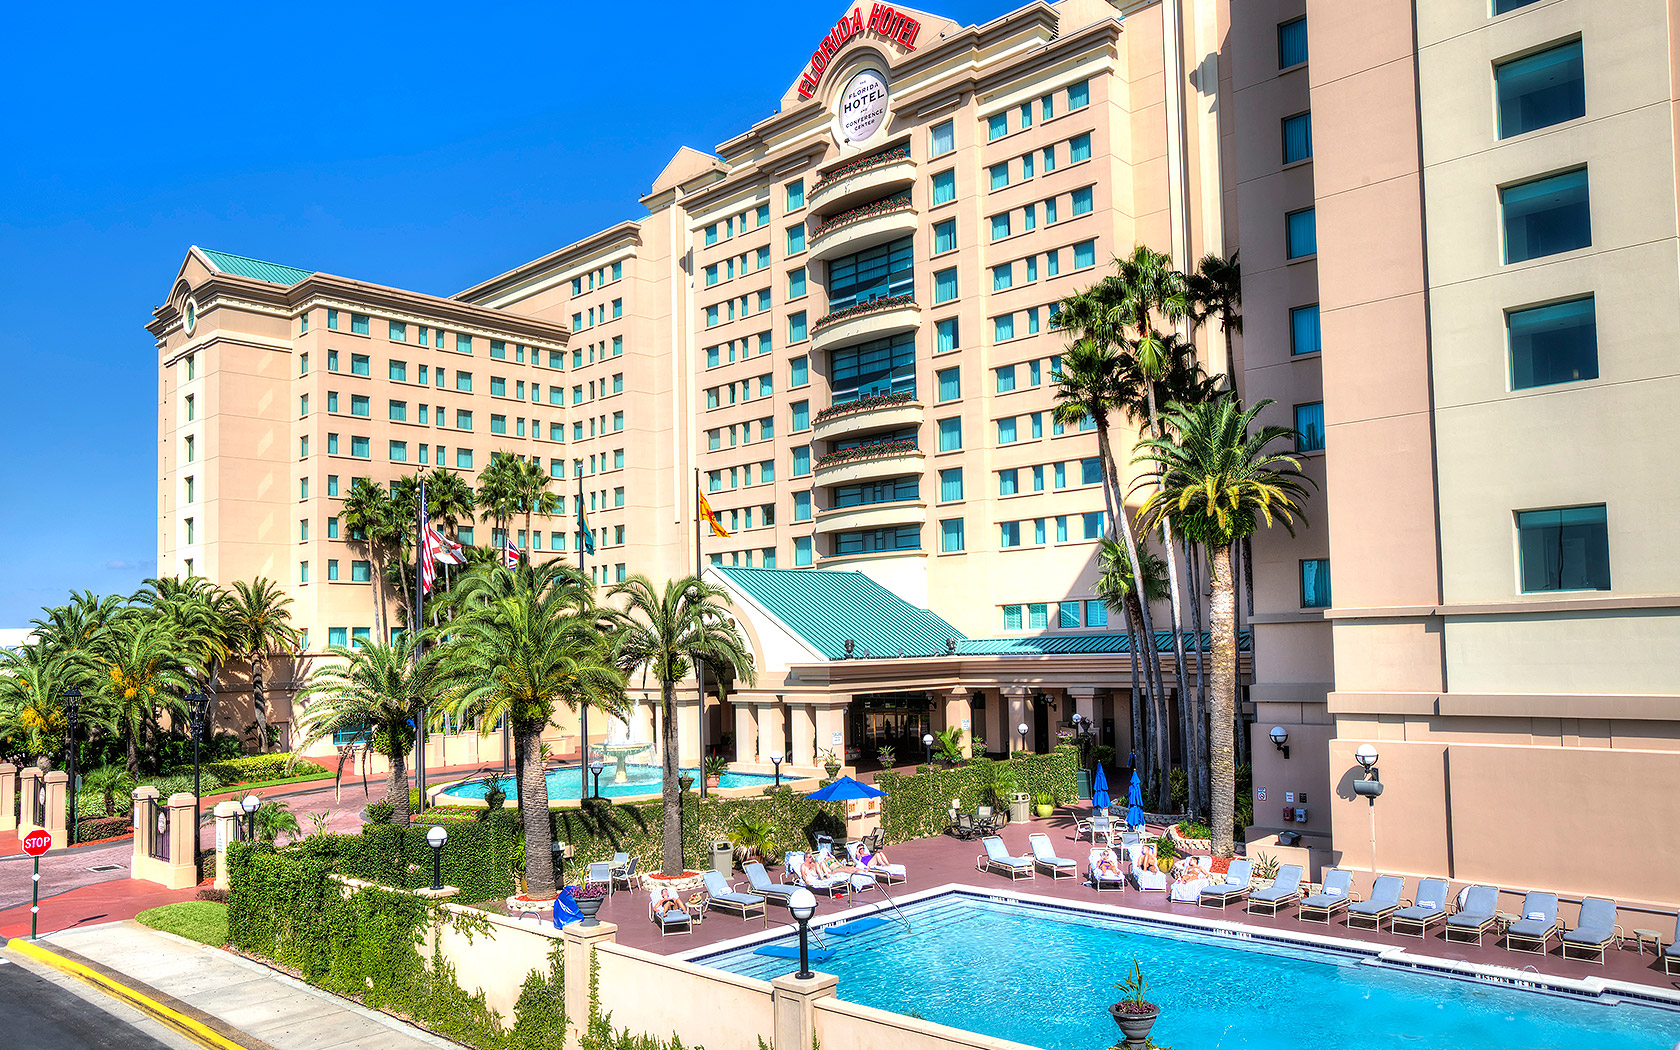 The Florida Hotel Conference Center Orlando Fl Official Hotel